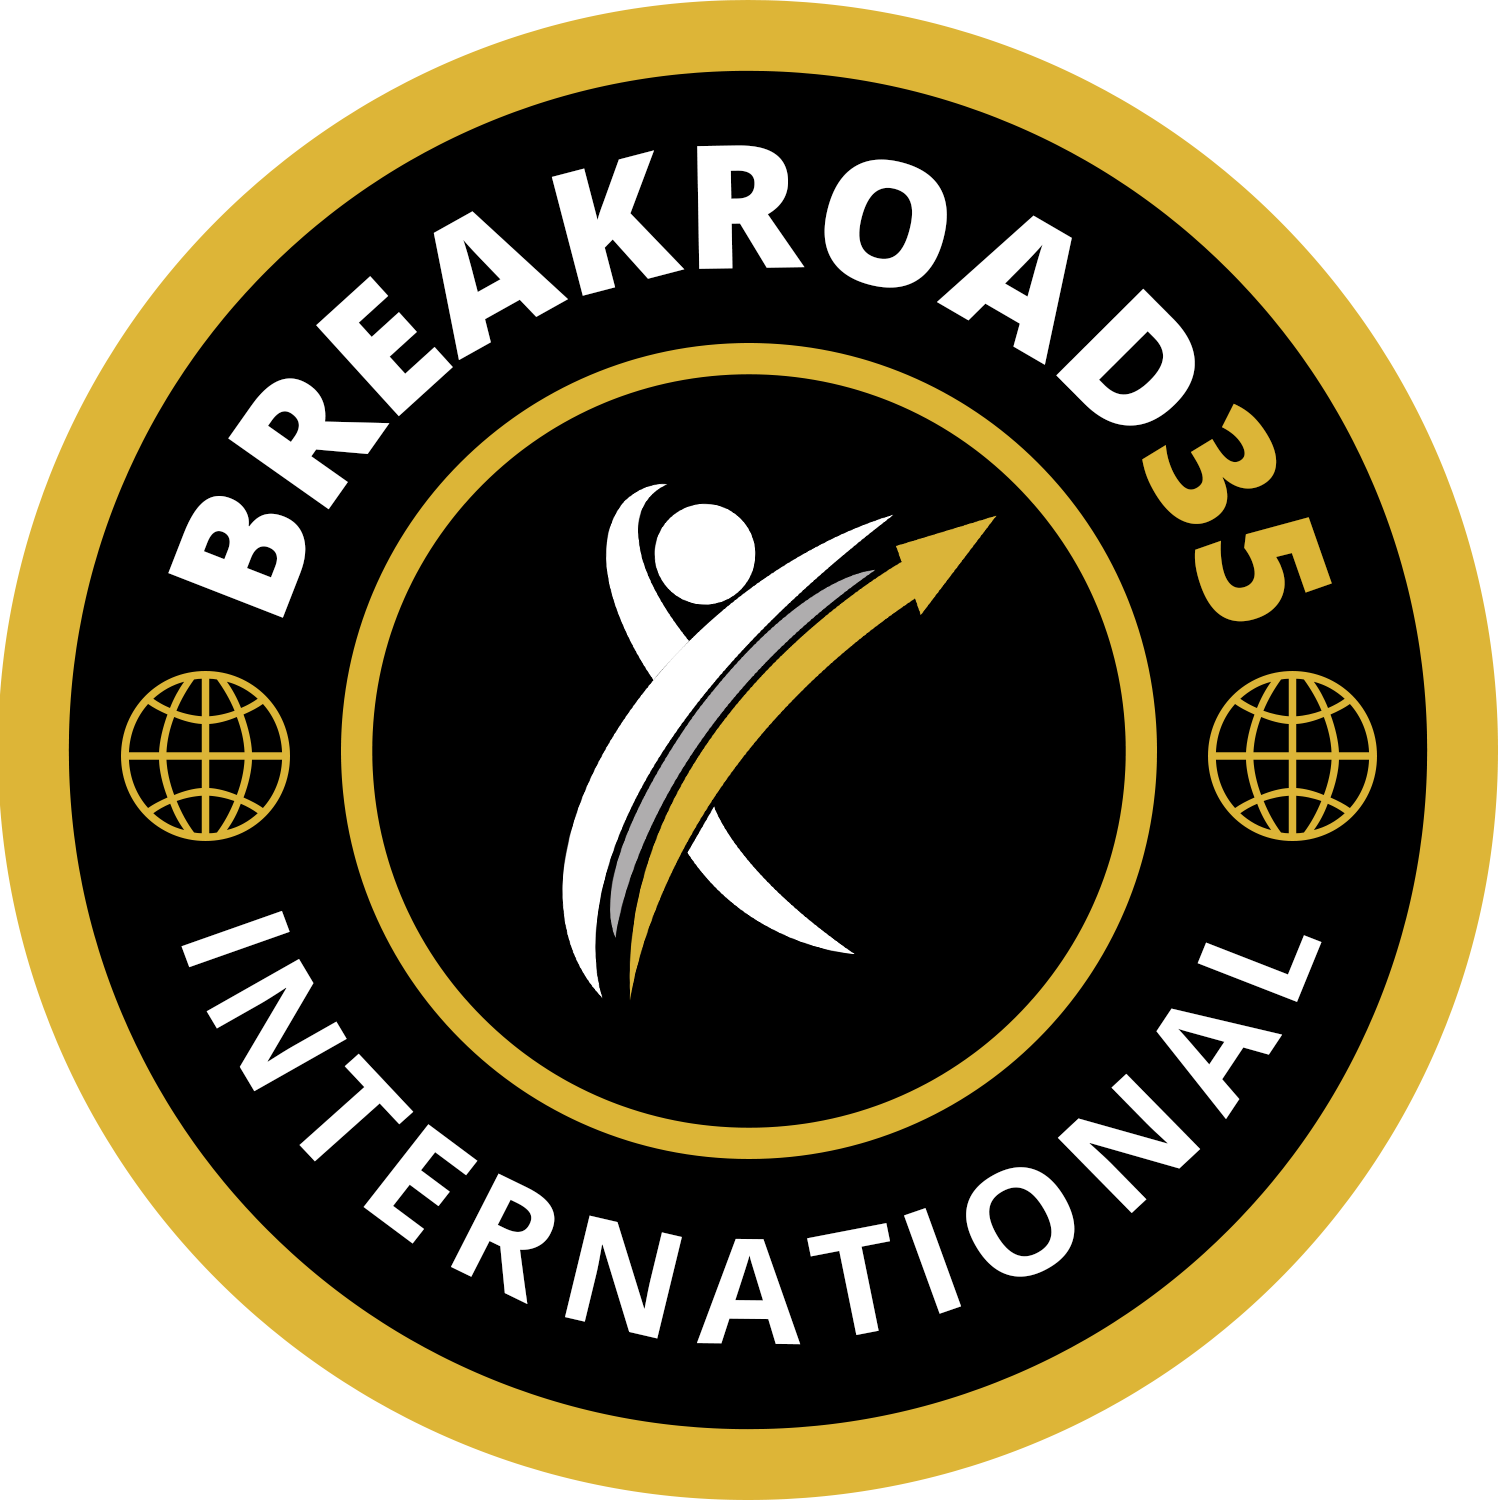 Breakroad35 International Marketing Corporation